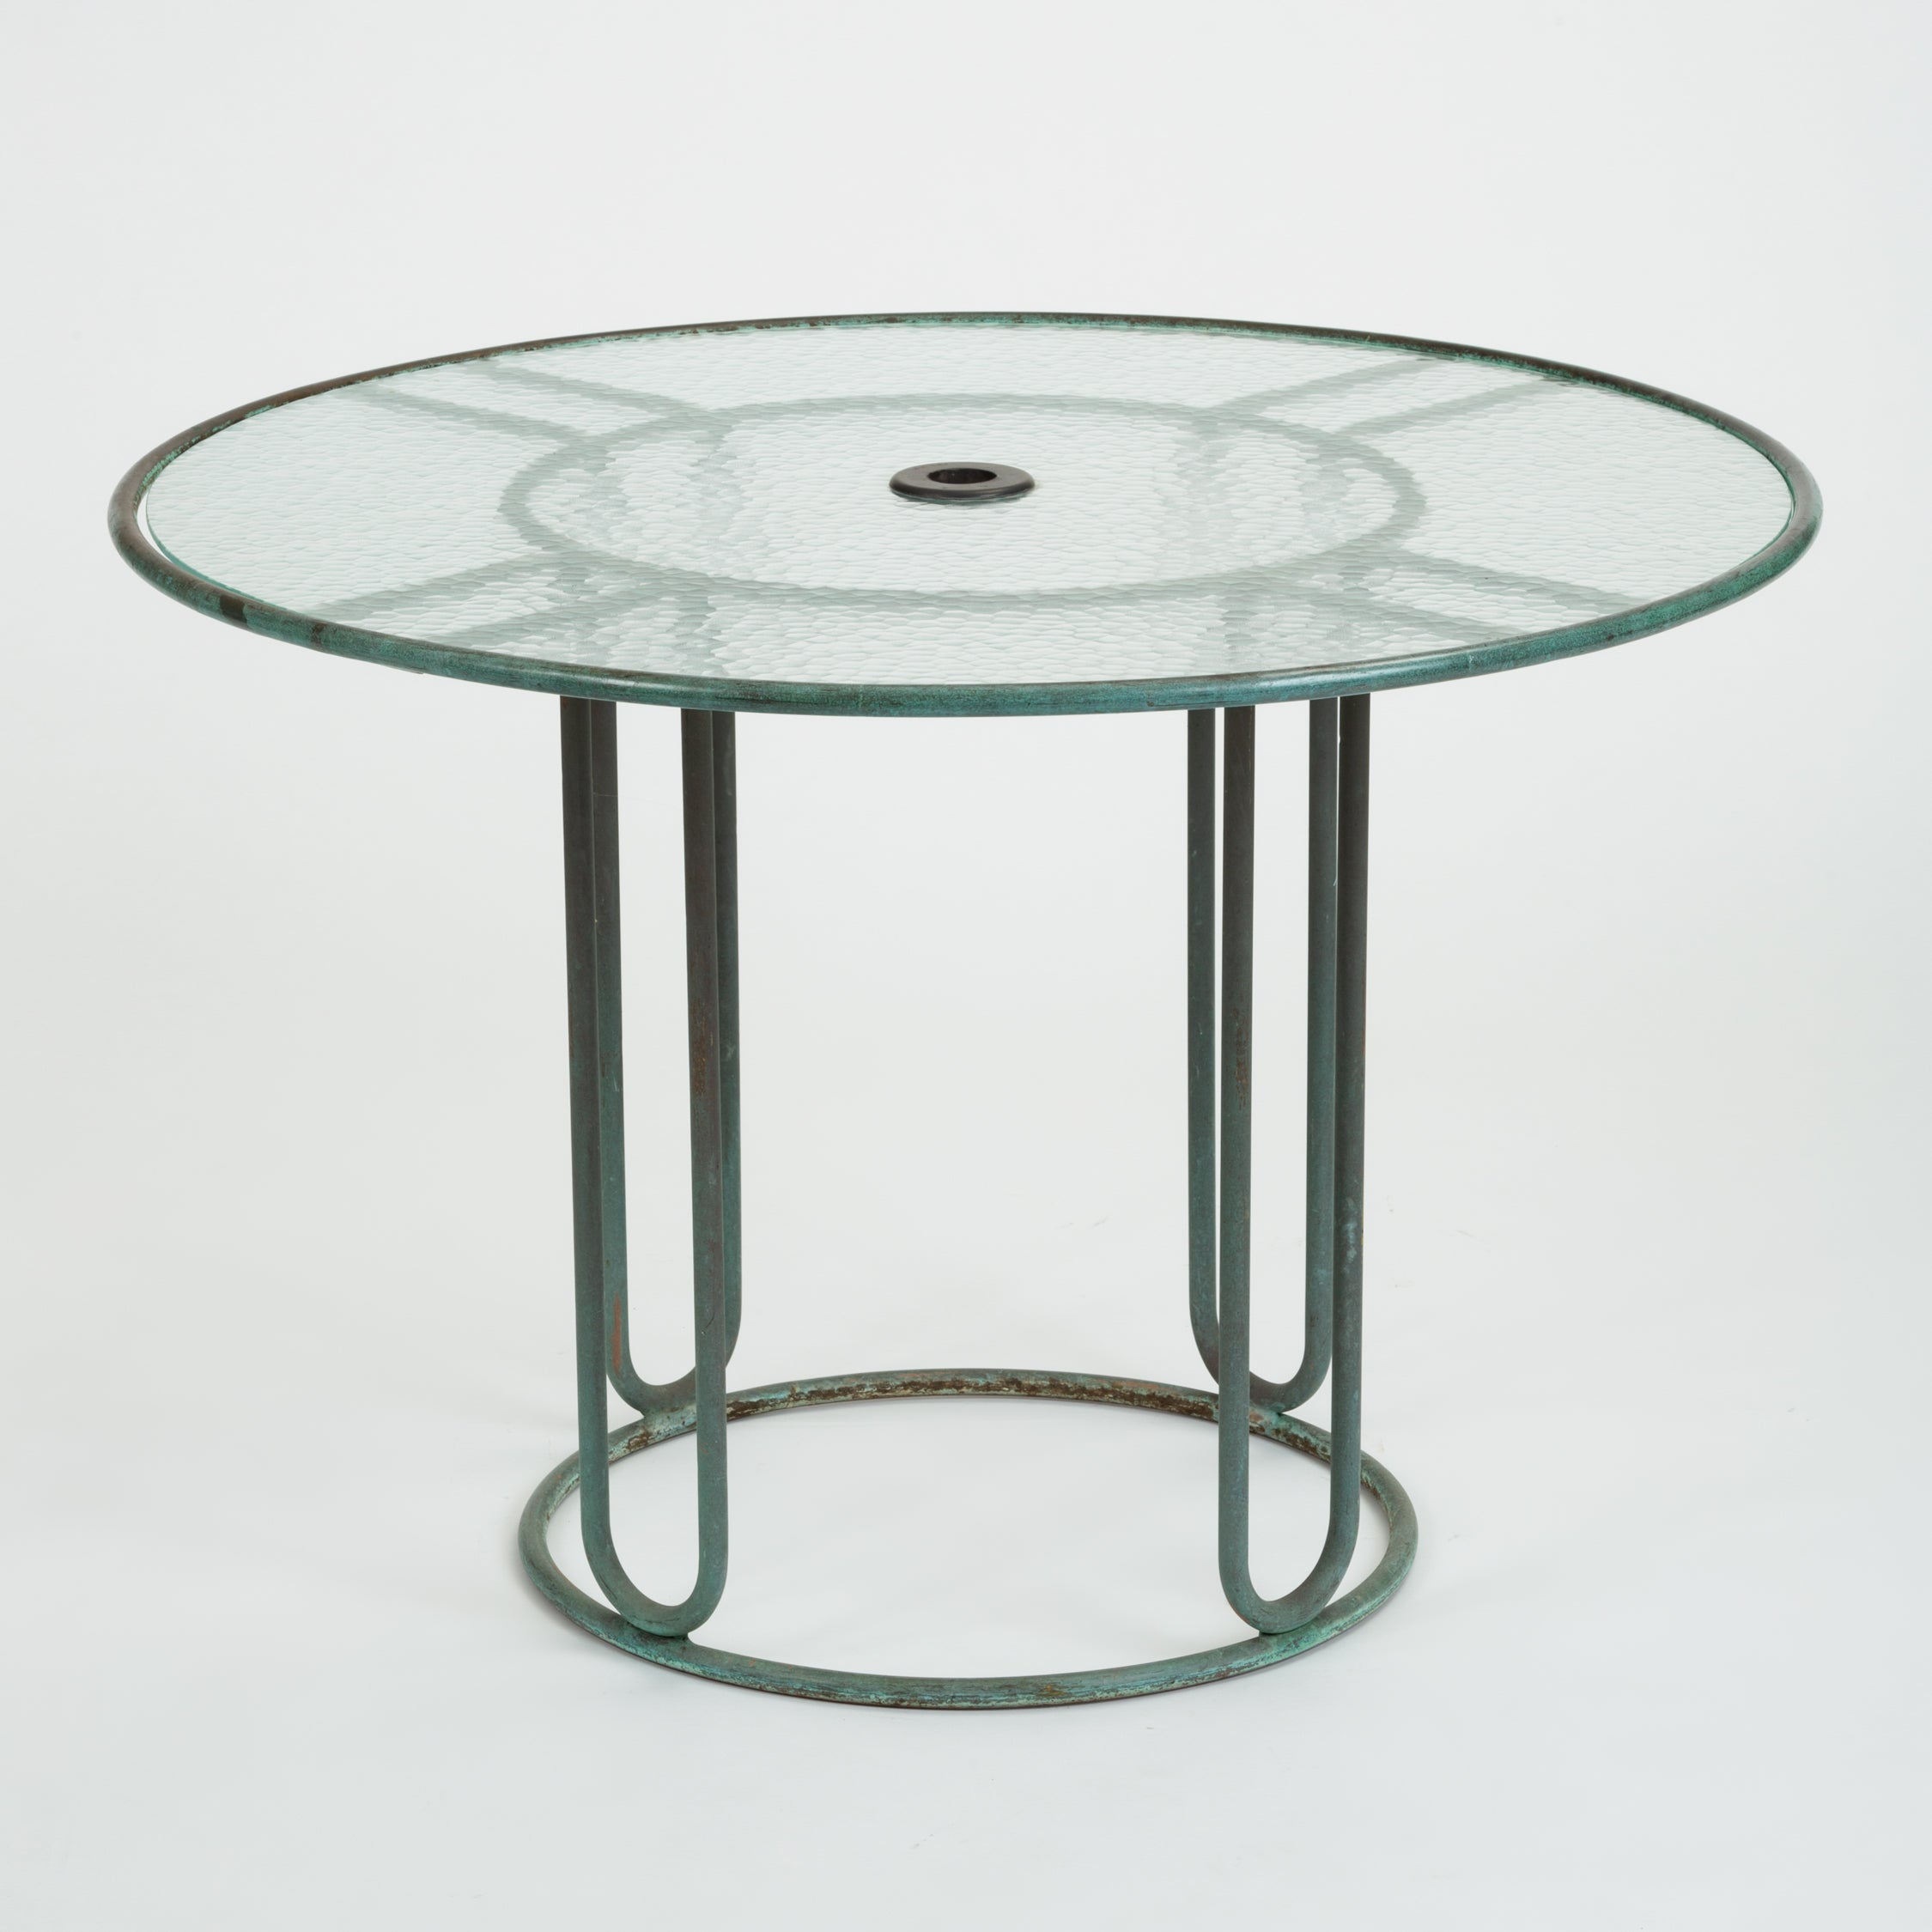 Round Bronze Patio Dining Table by Walter Lamb for Brown Jordan